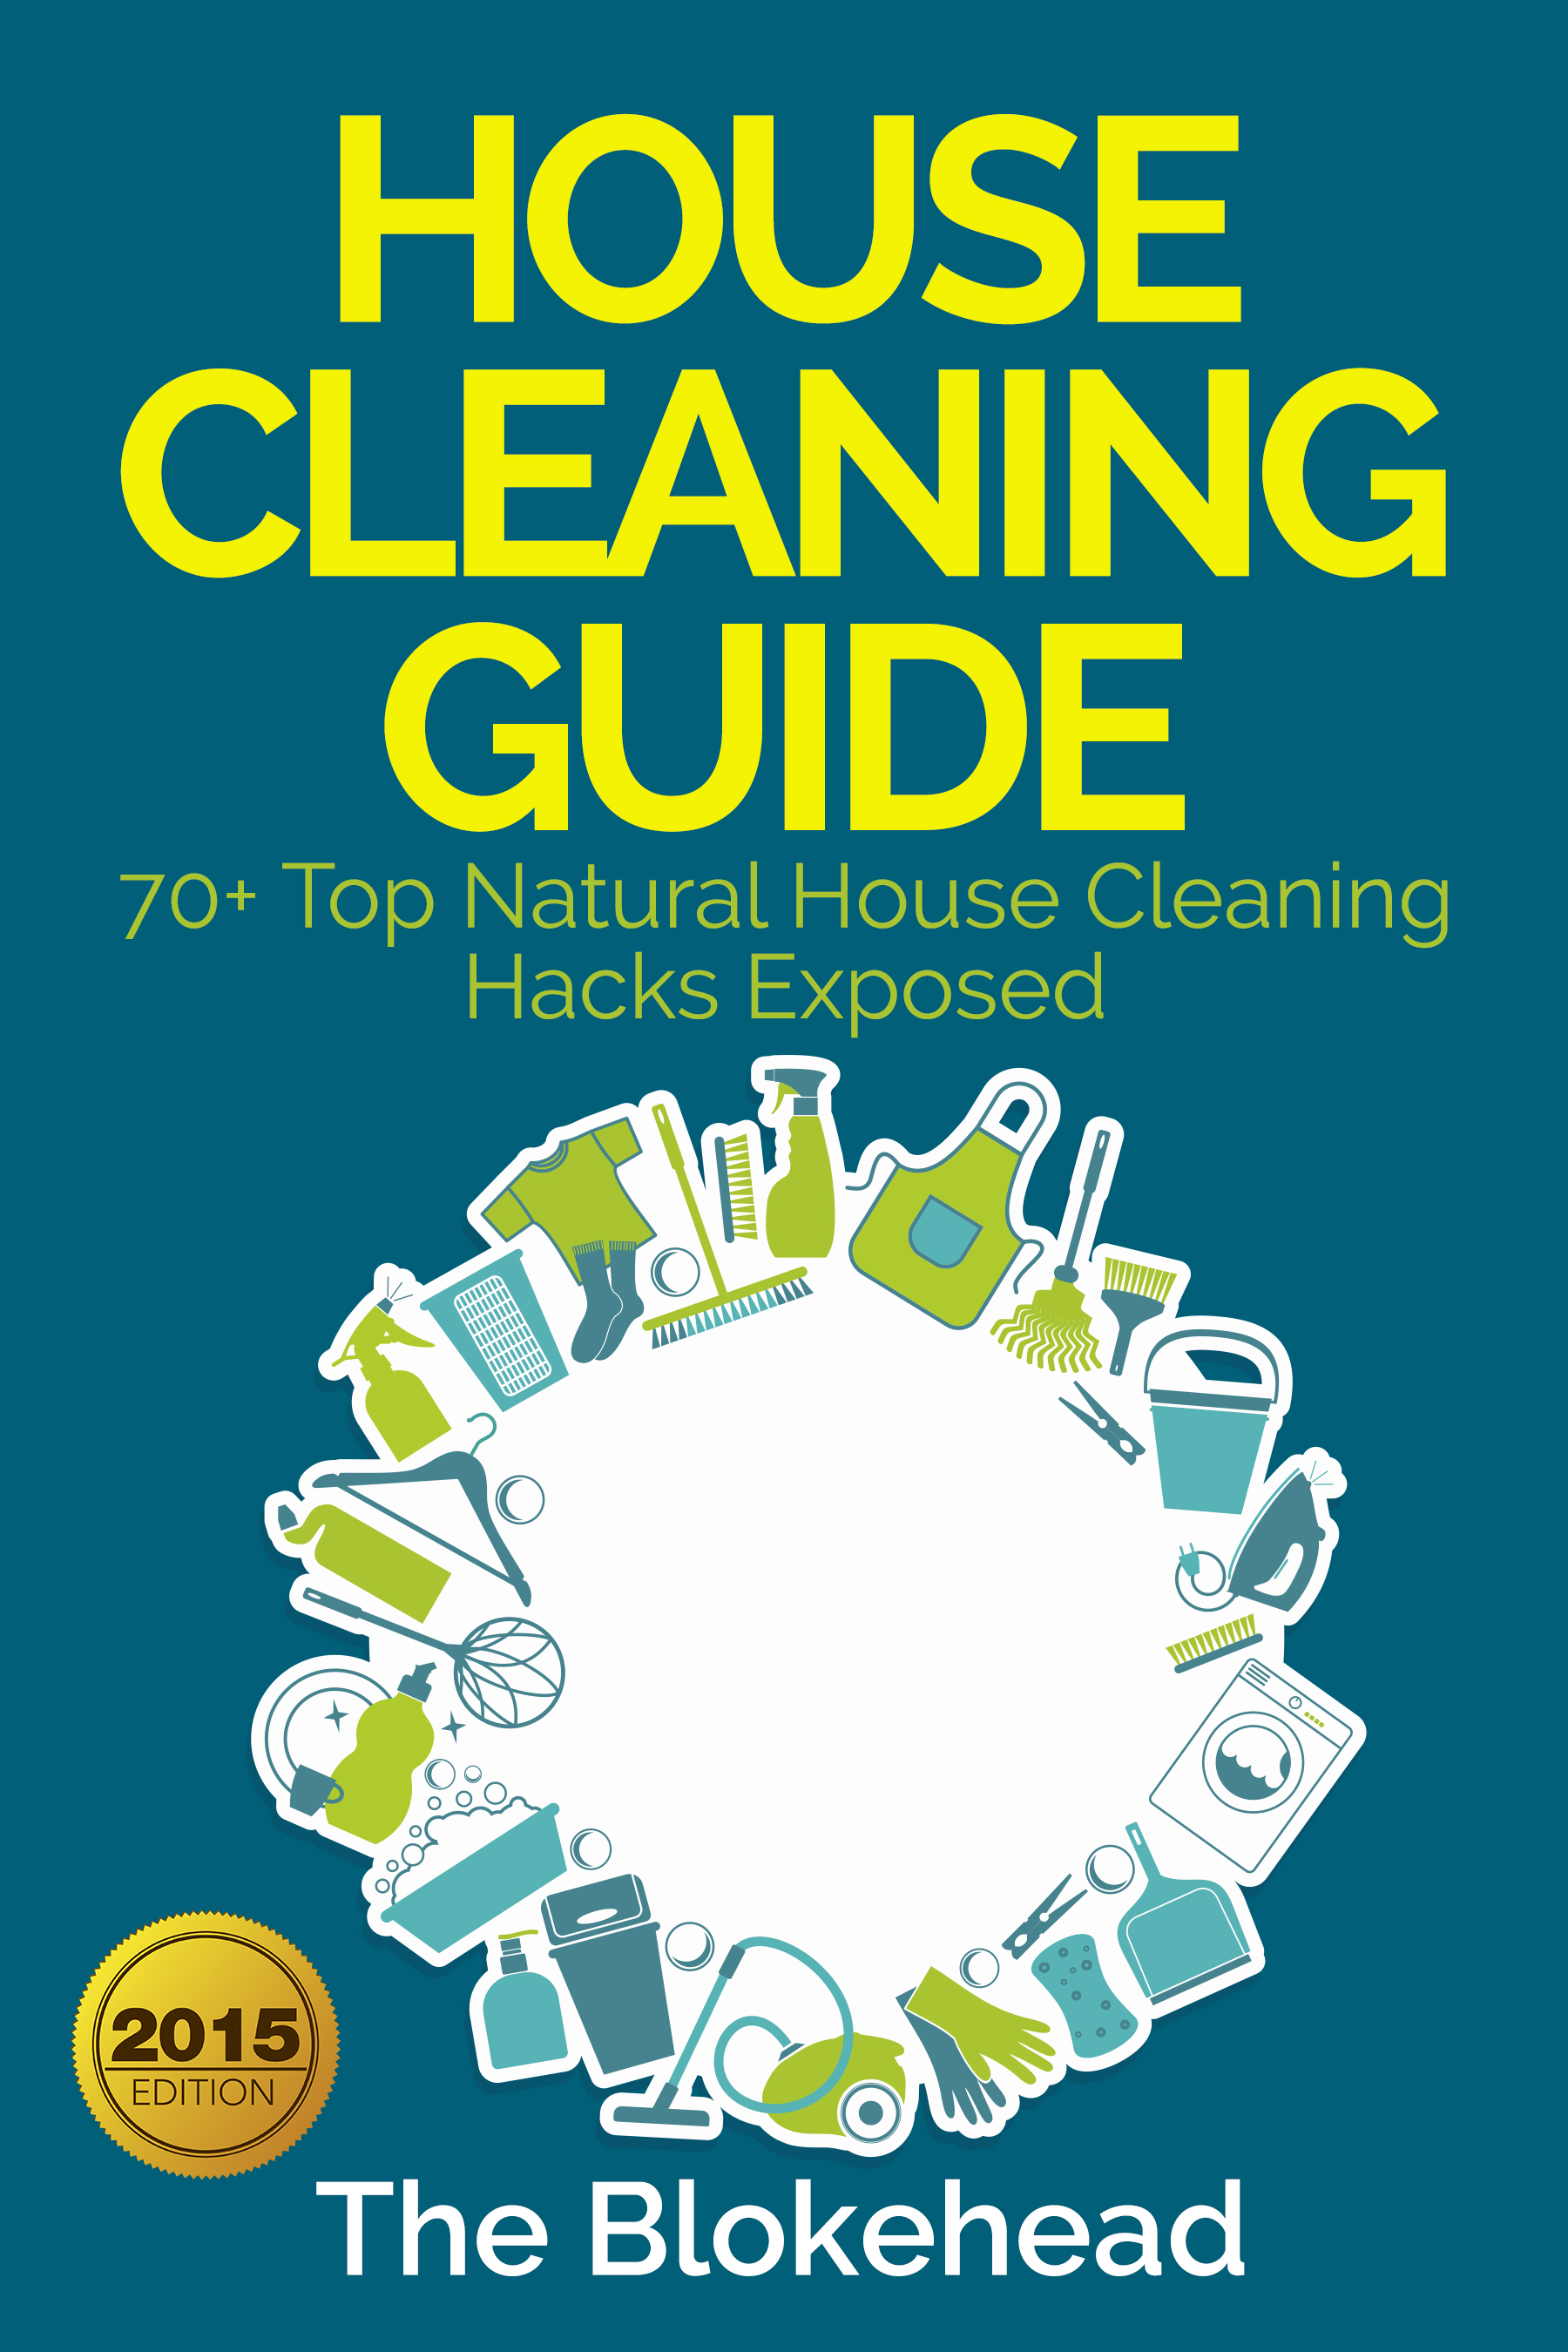 House cleaning guide : 70+ top natural house cleaning hacks exposed